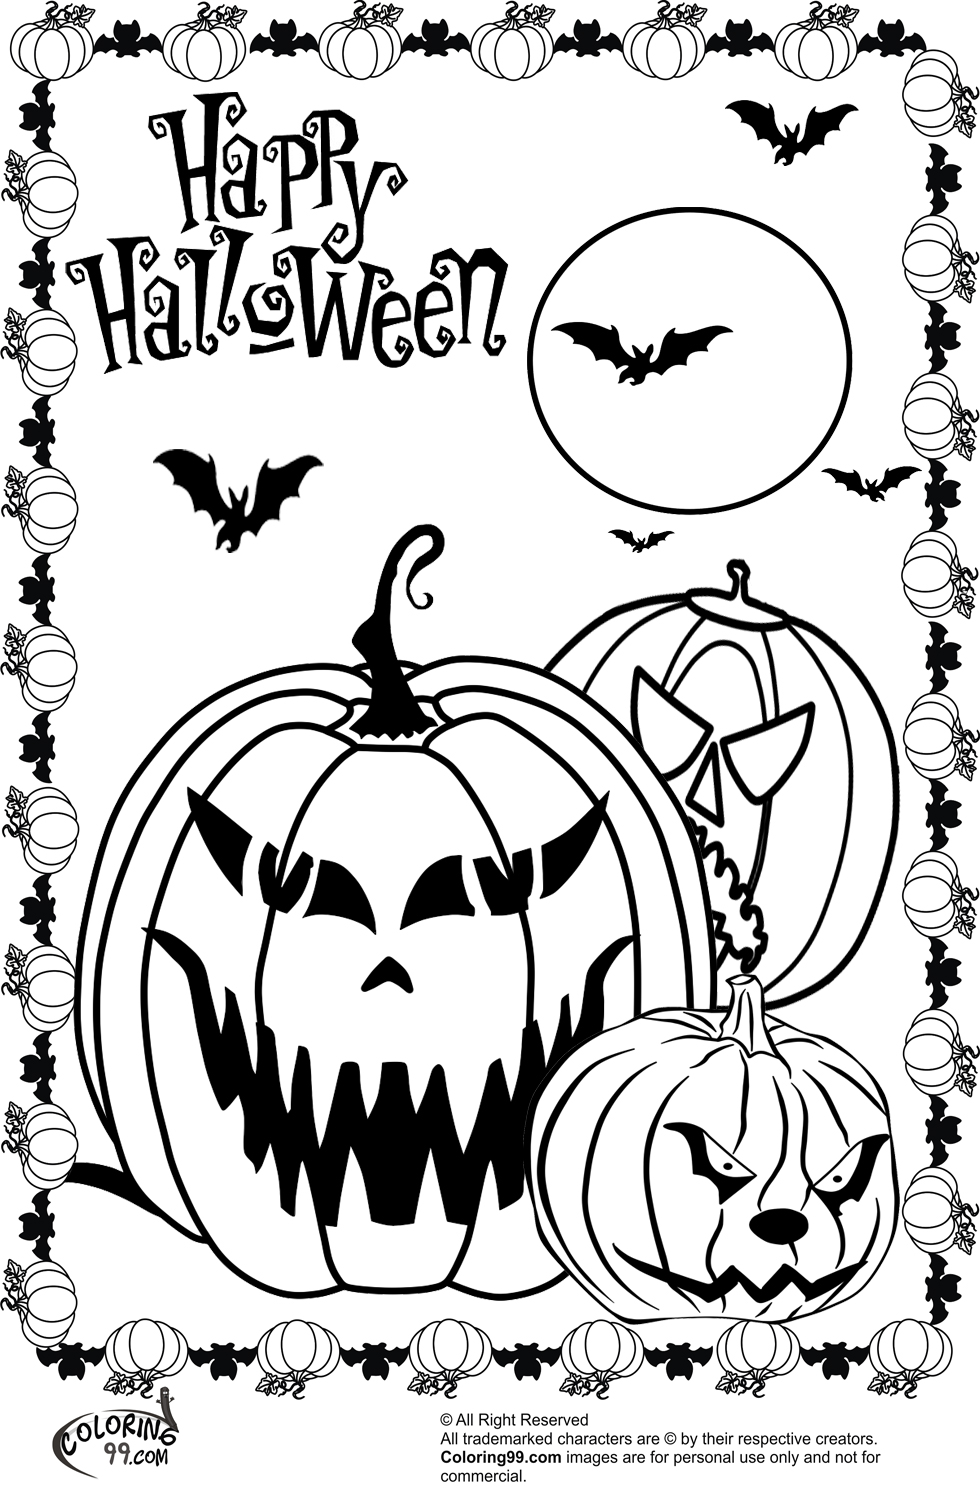 It's just a picture of Declarative Coloring Pages Halloween Printable